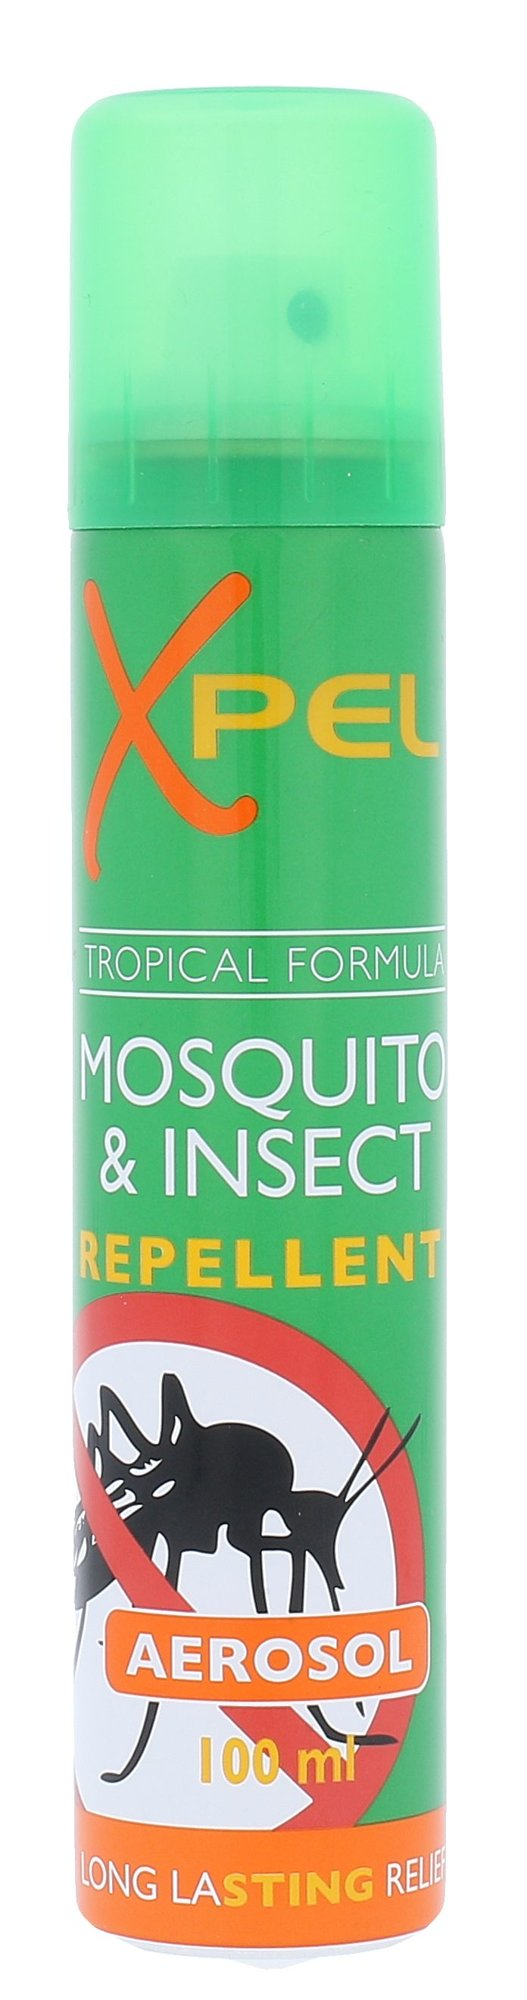 Xpel Mosquito & Insect Cosmetic 100ml